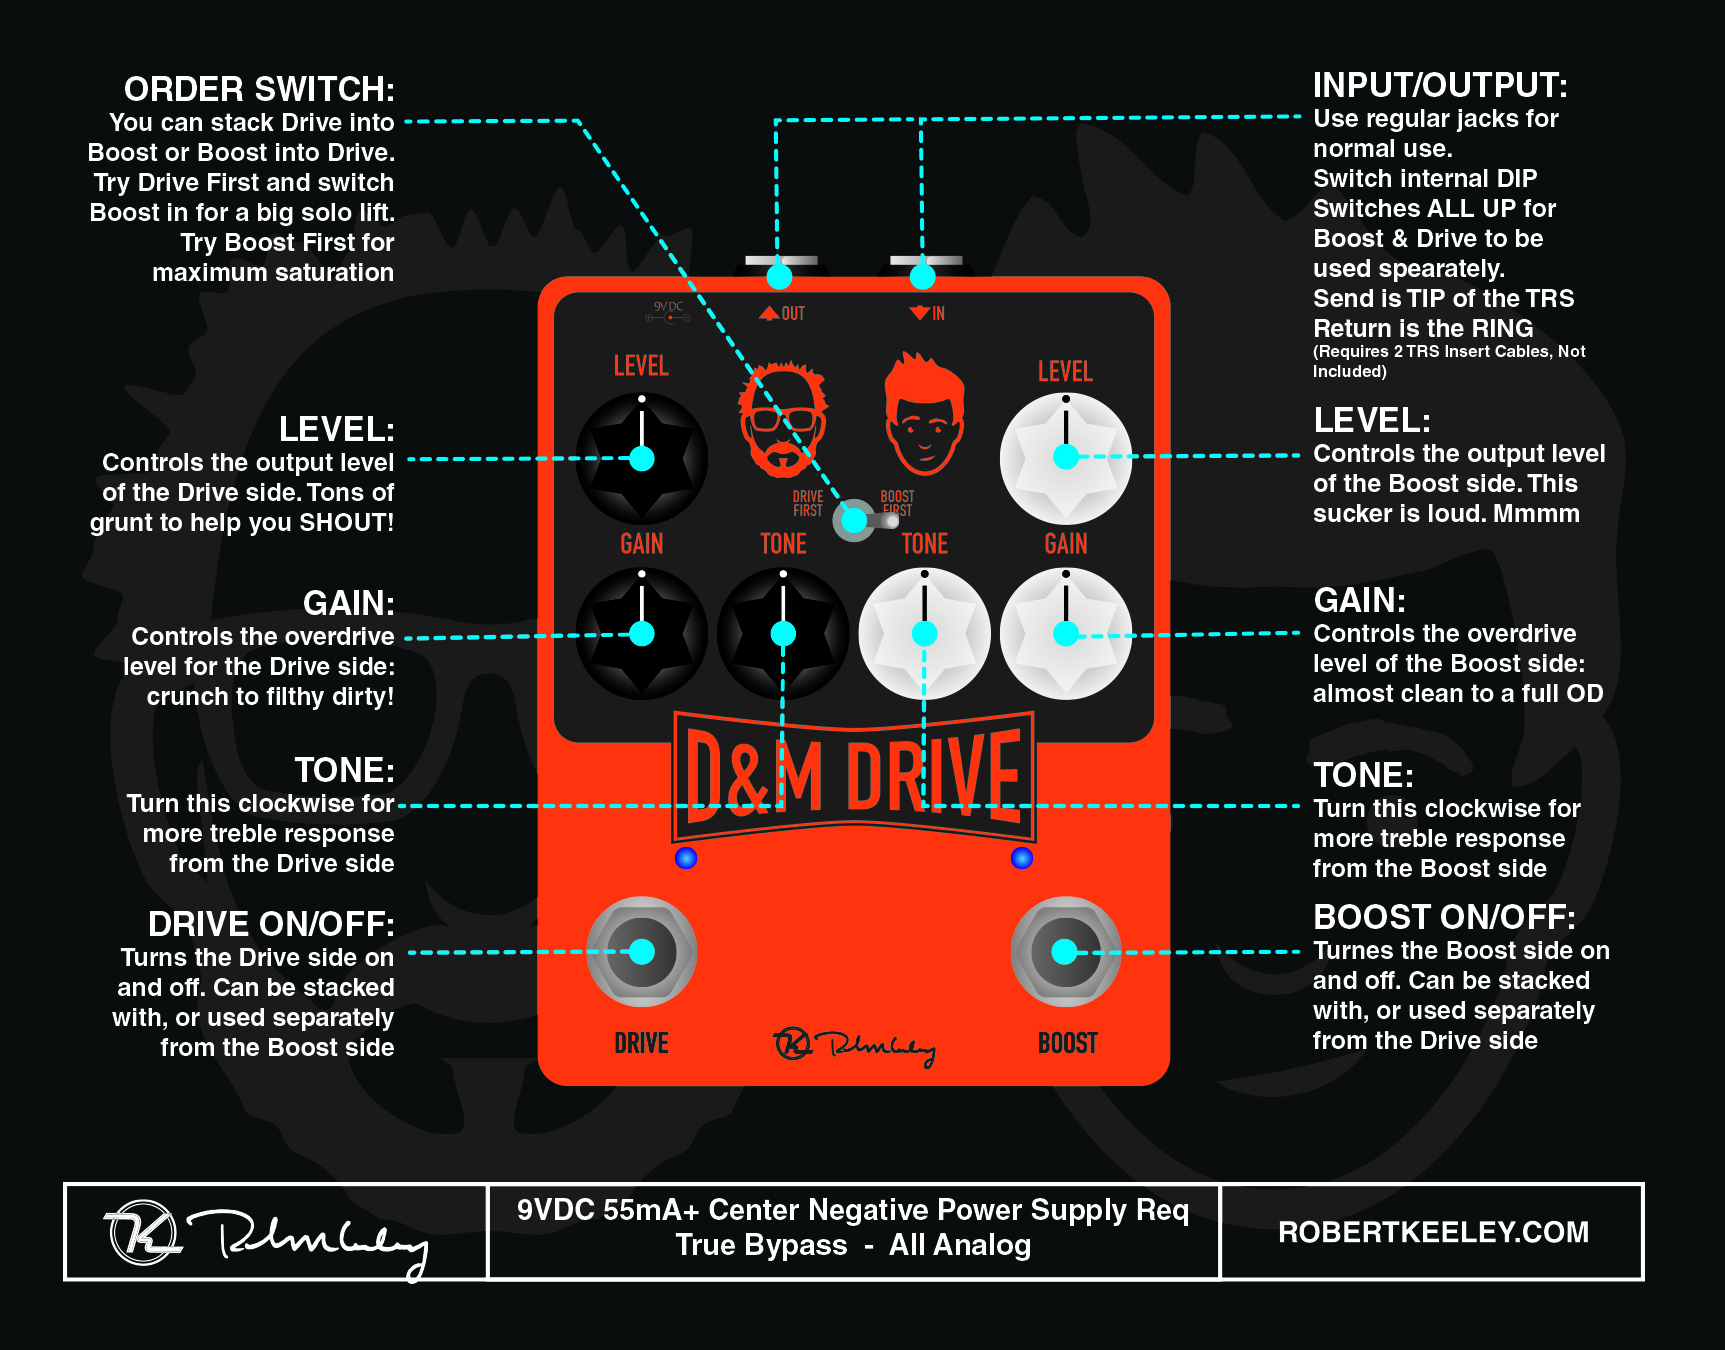 D&M Drive and Boost for That Pedal Show - Robert Keeley